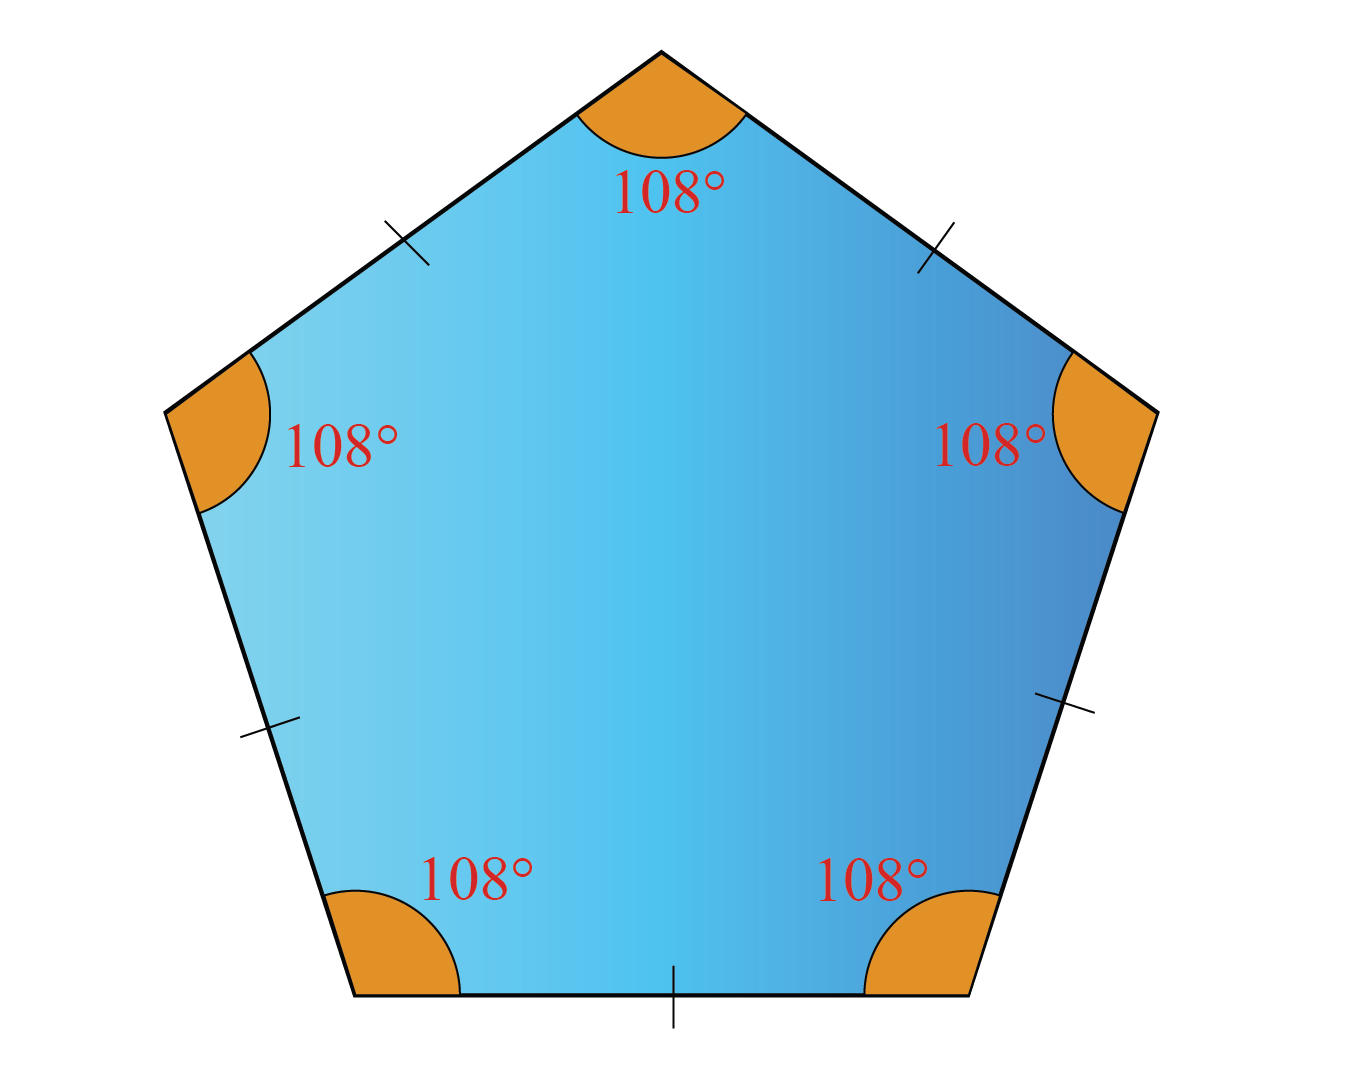 Finding interior angles of a regular polygon: The interior angle of a regular pentagon is 108 degrees.